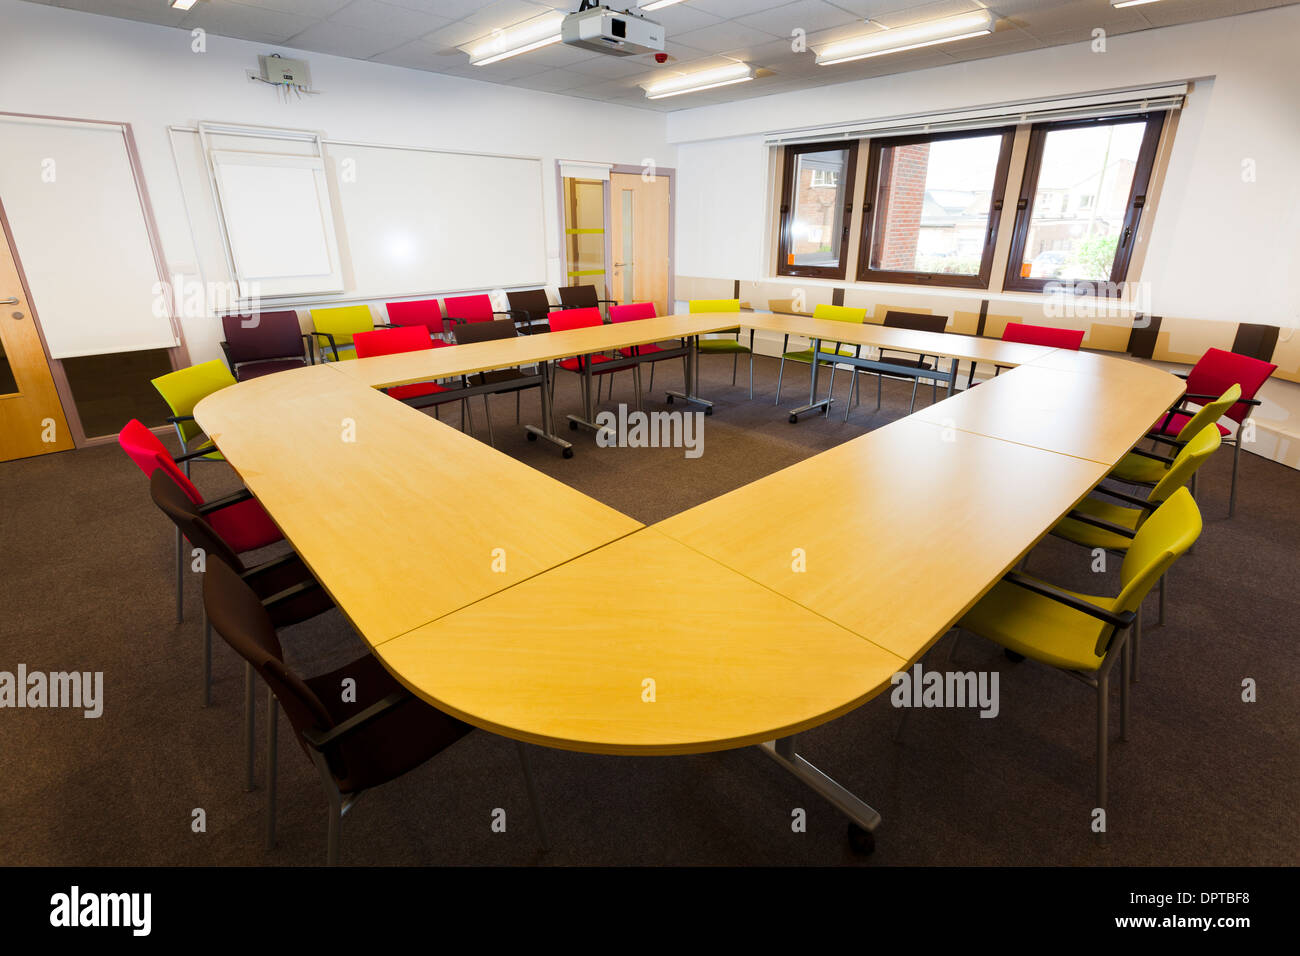 Unoccupied Conference Table Layout In Office Stock Photo - Conference table layout